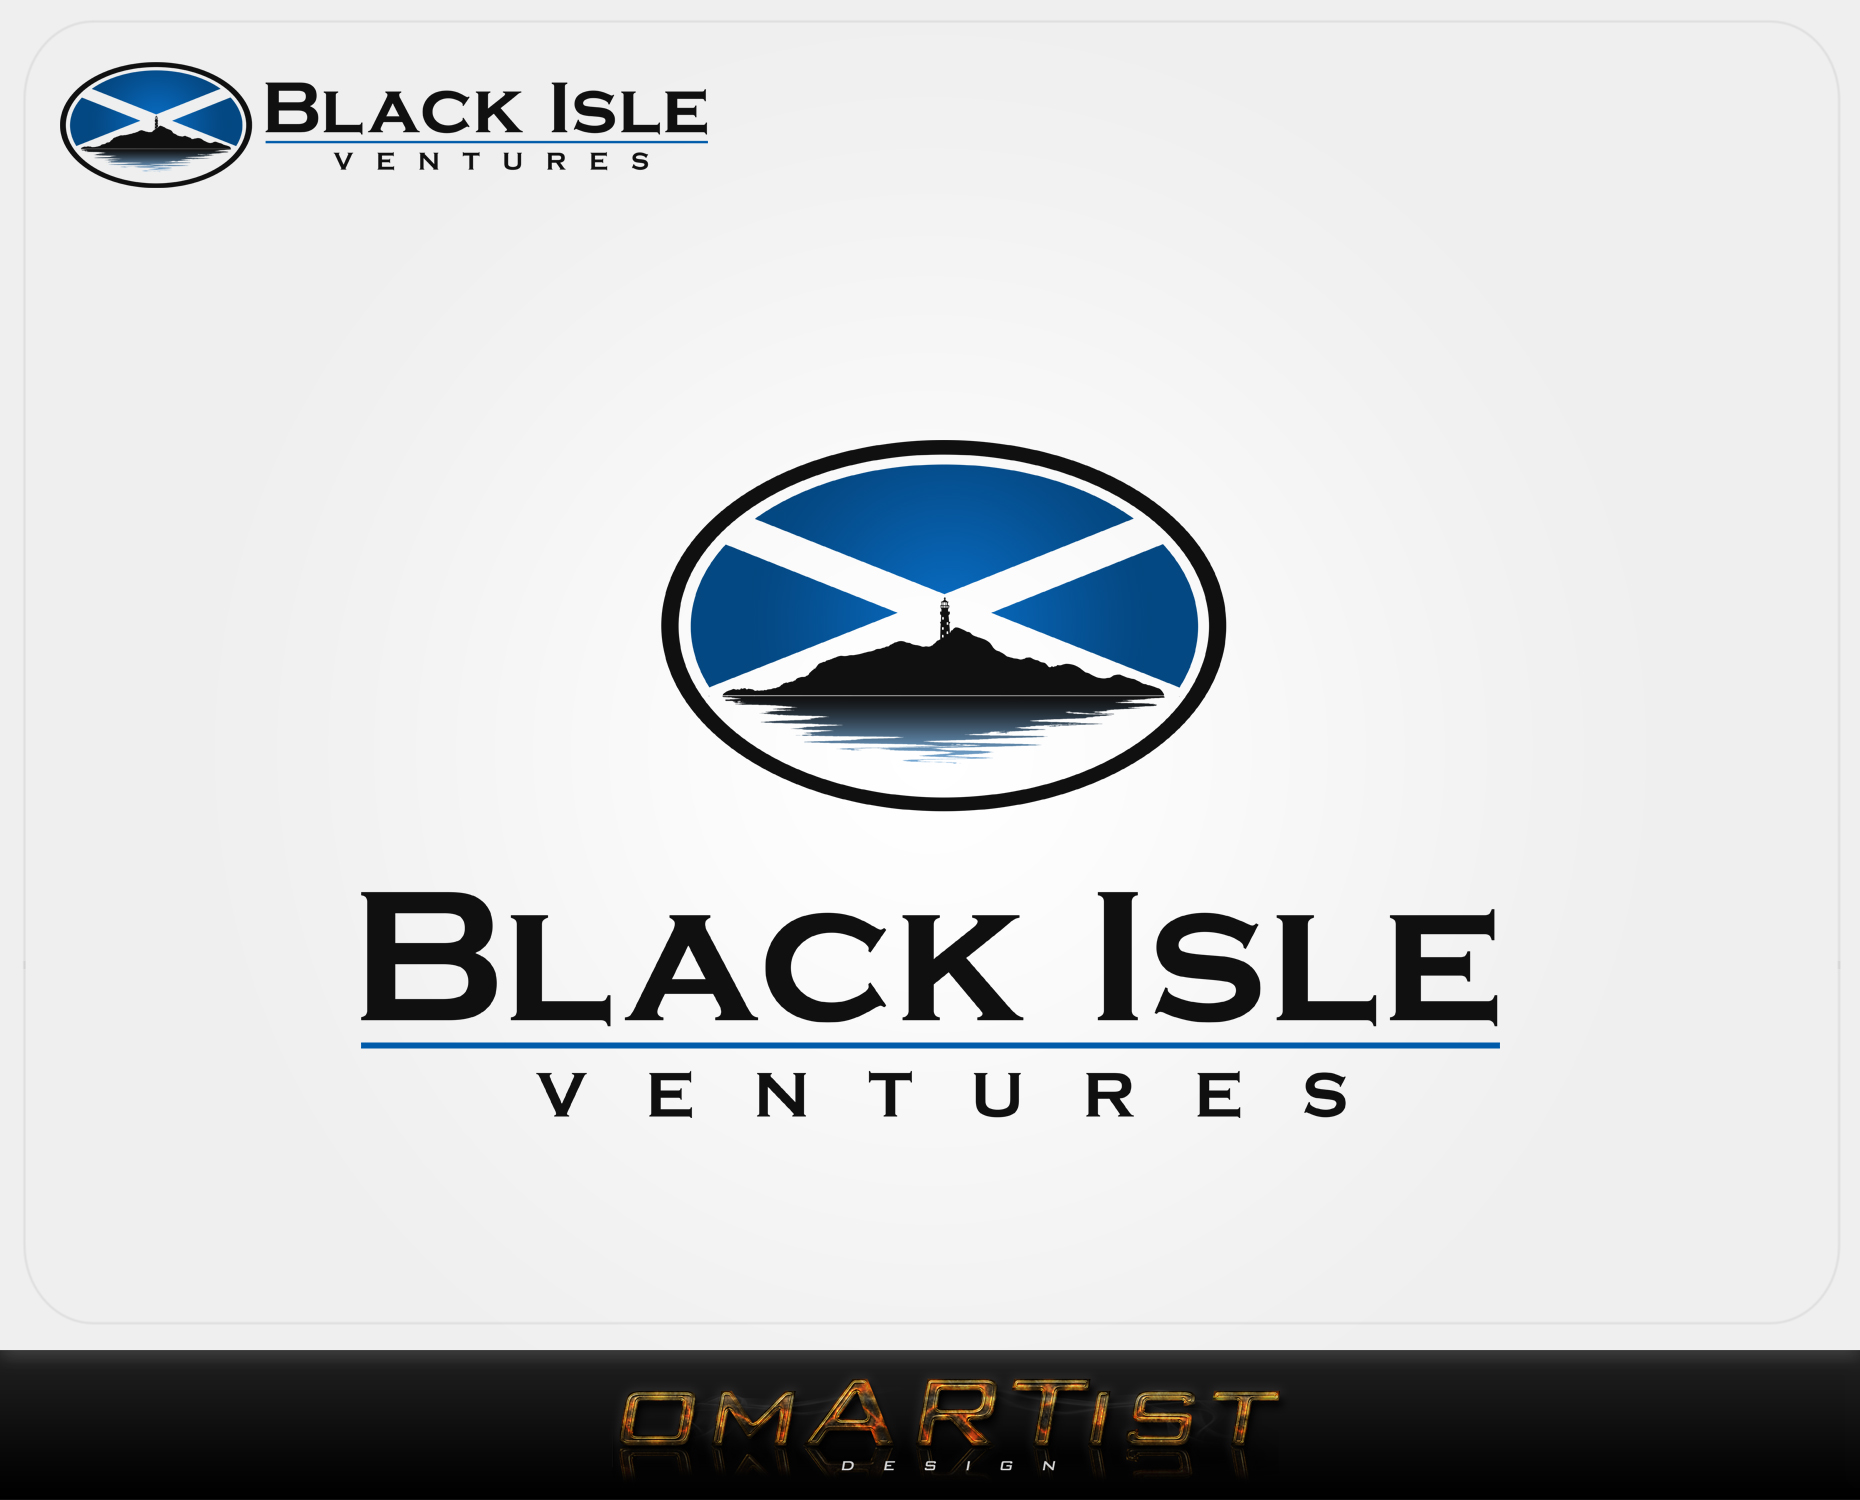 Logo Design by omARTist - Entry No. 126 in the Logo Design Contest Creative Logo Design for Black Isle Ventures.